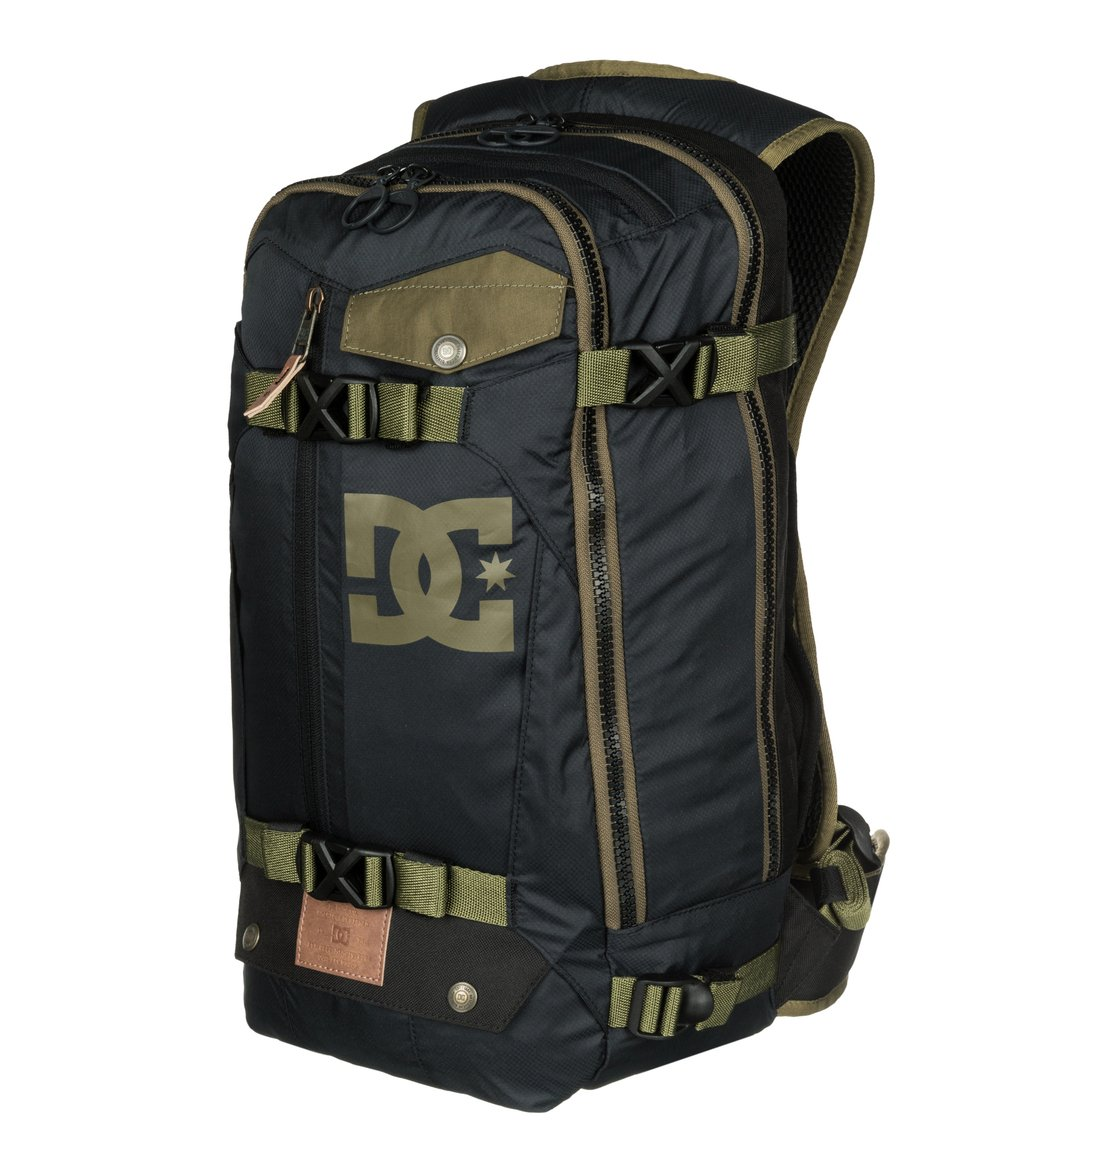 271d8705959 1 Men's Gunner Snow Backpack EDYBP03036 DC Shoes